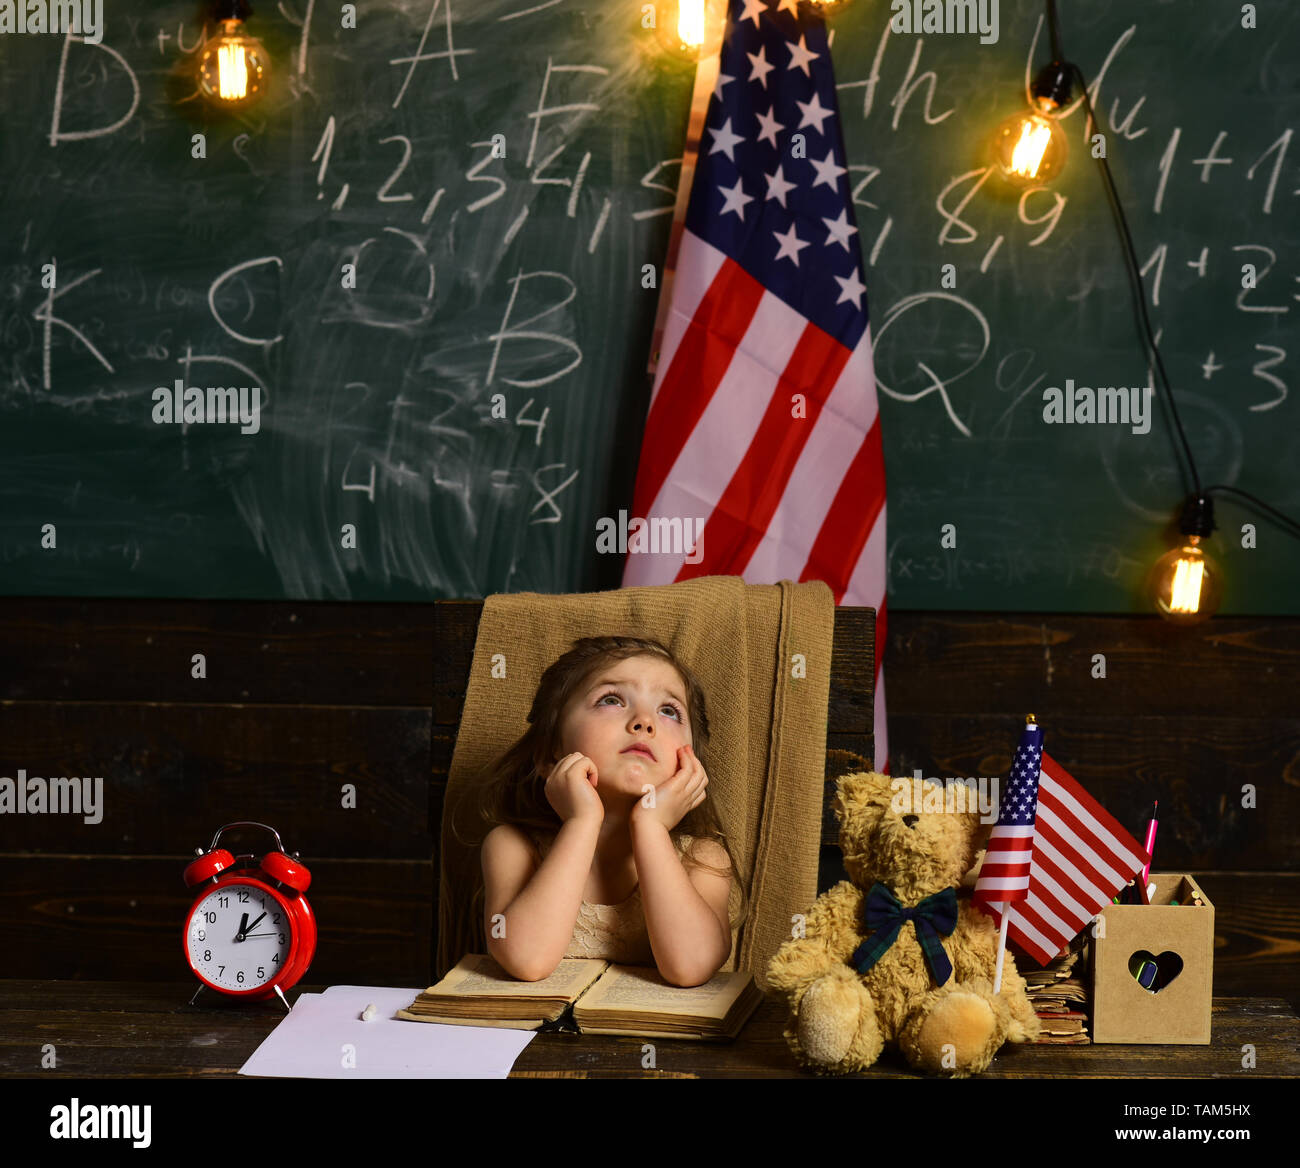 Tutor he must also have the parents trust. US flag and a blackboard. Little help can get student back on track. Education university and school system - Stock Image